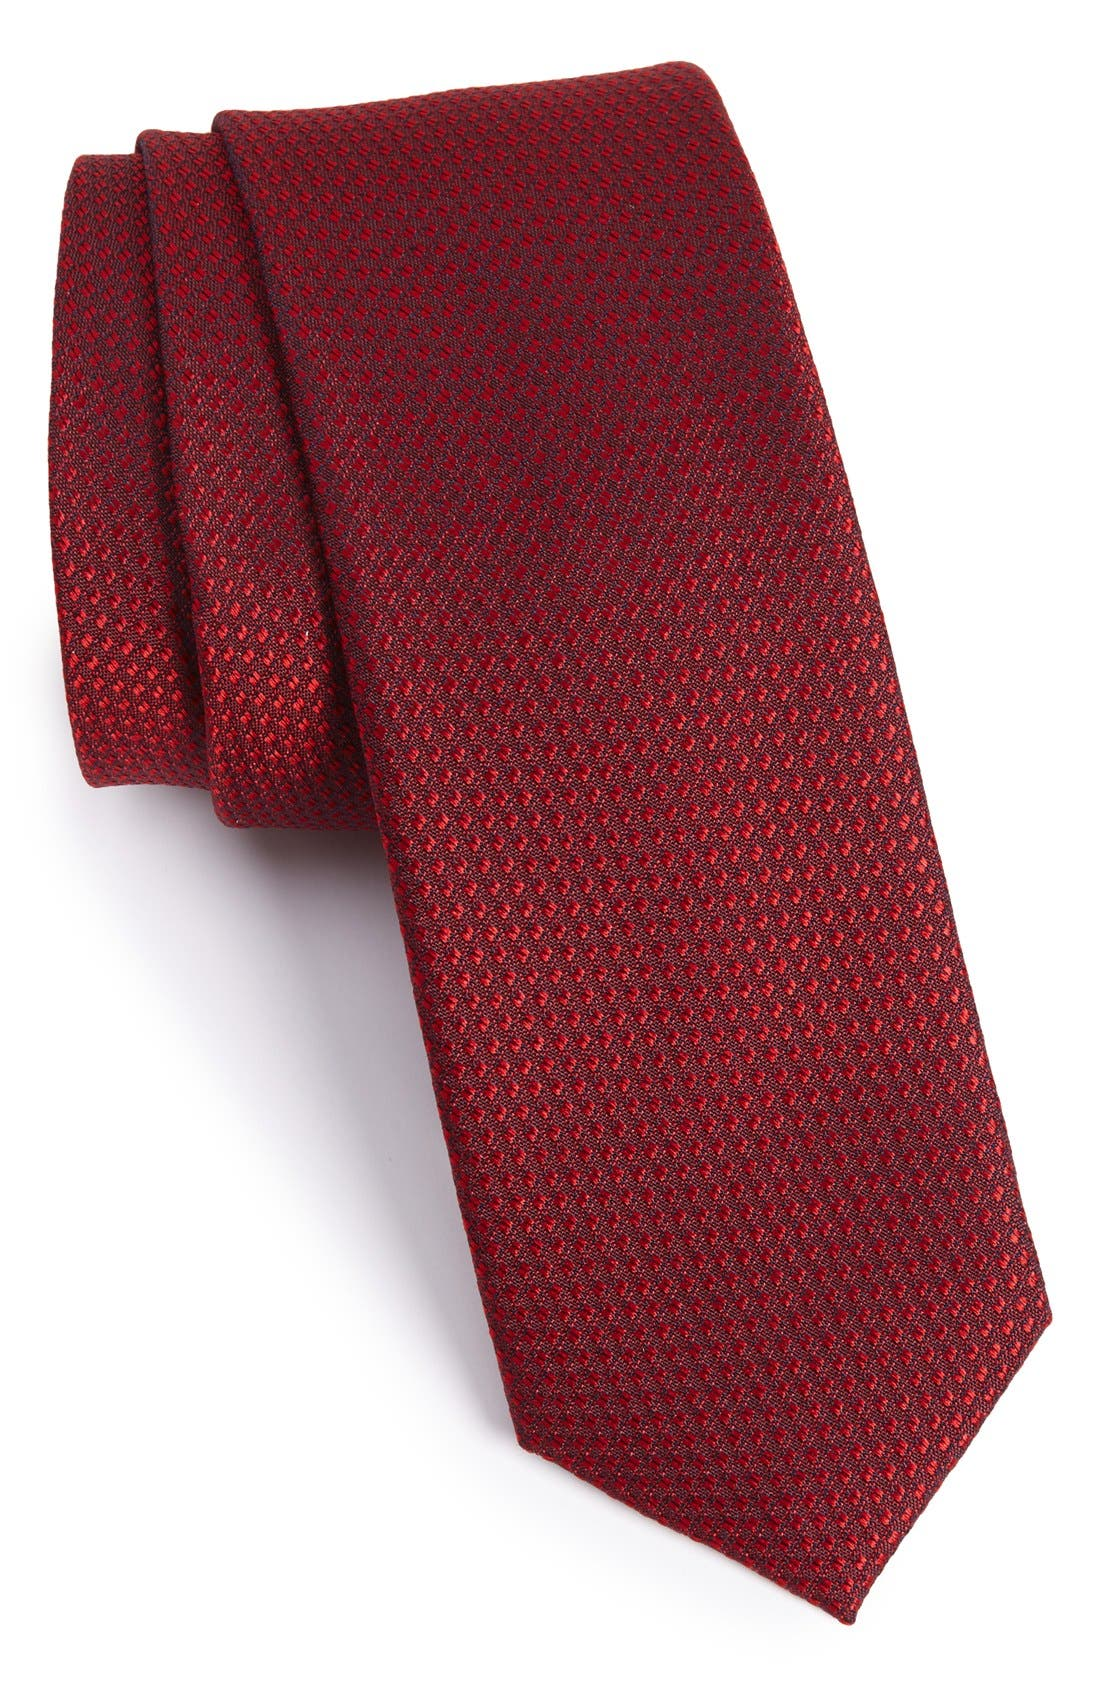 Seattle Textured Silk Tie,                         Main,                         color, Burgundy